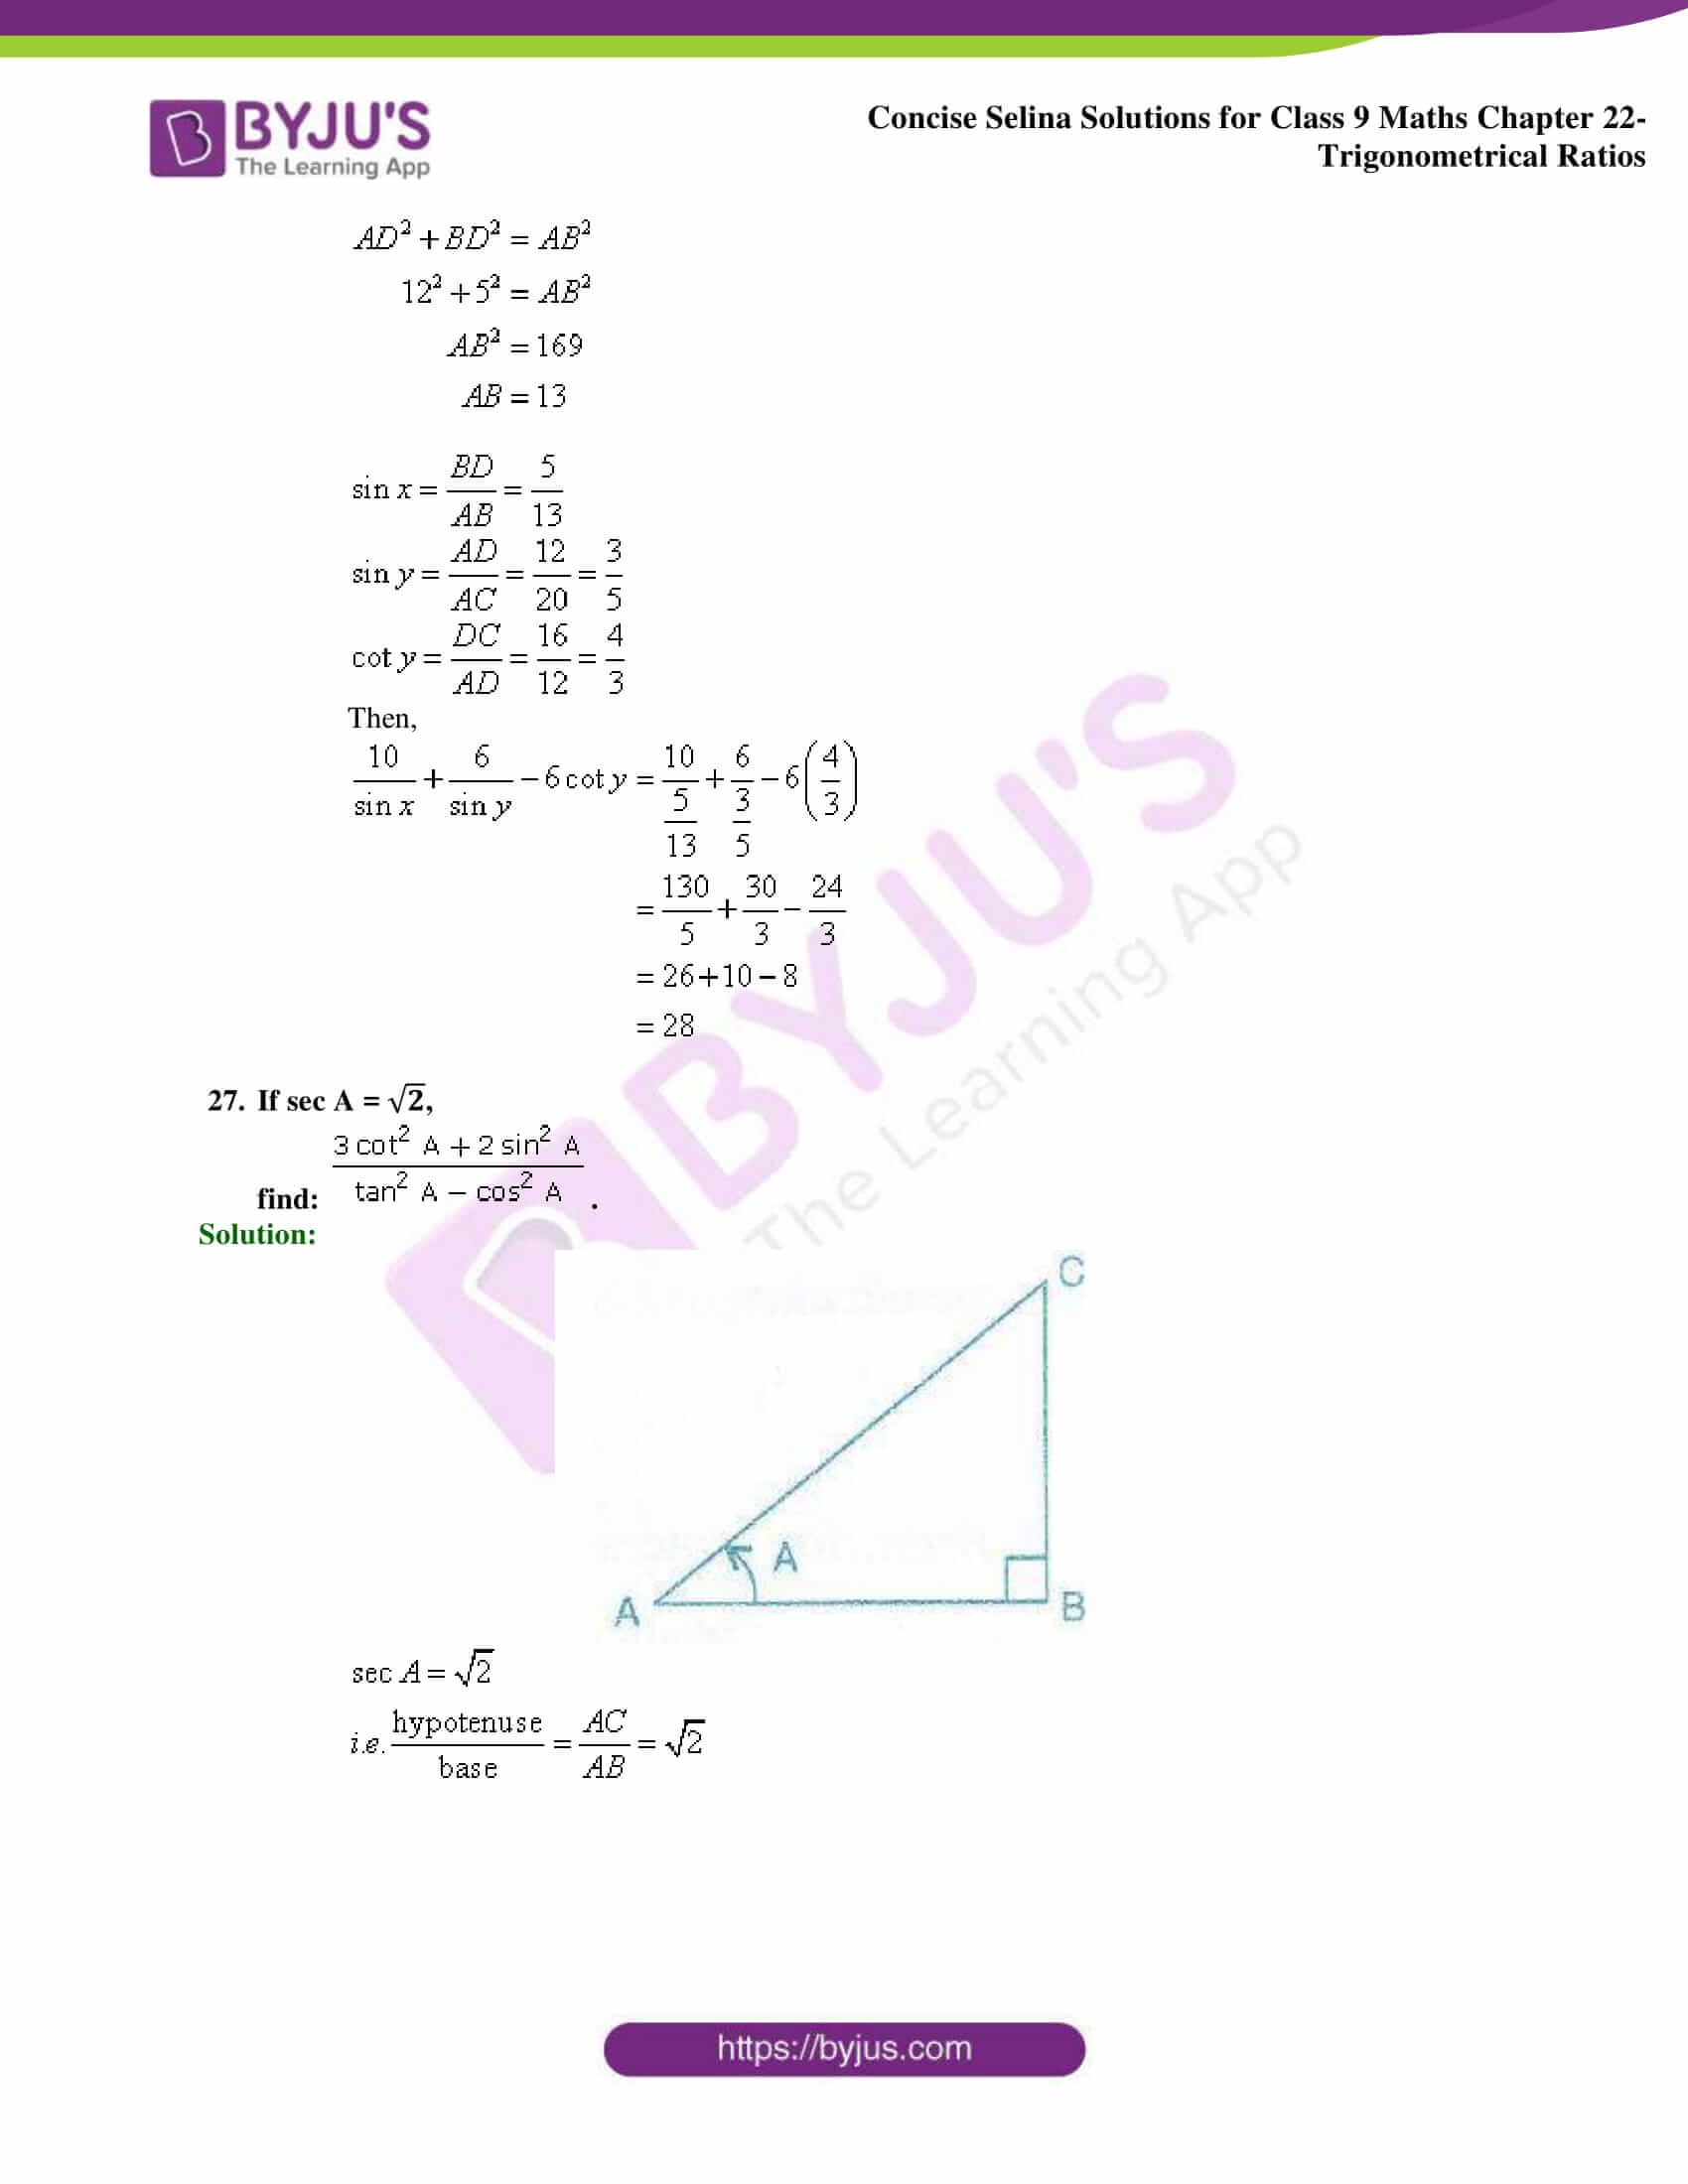 Concise Selina Solutions Class 9 Maths Chapter 22 Trigonometrical Ratios part 49